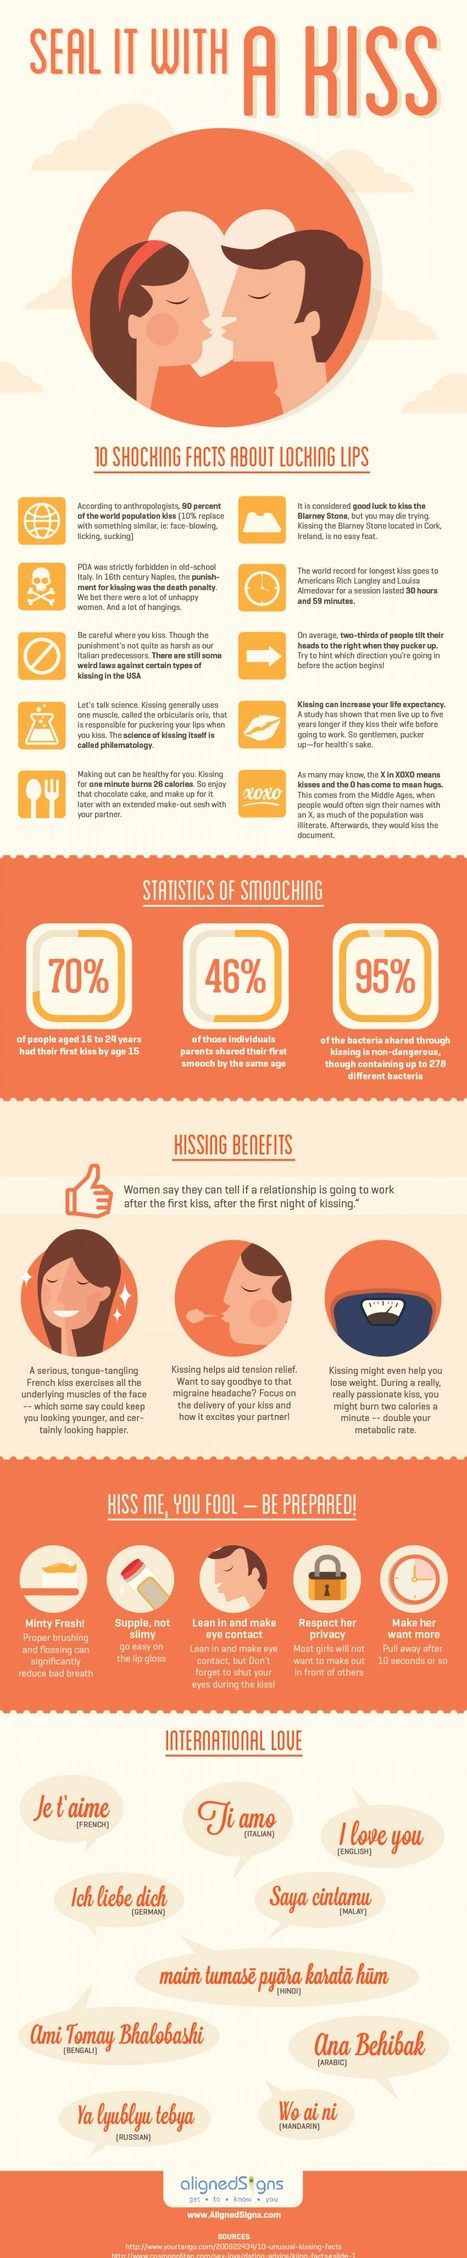 Facts About Lip Locking | Infographics | Scoop.it